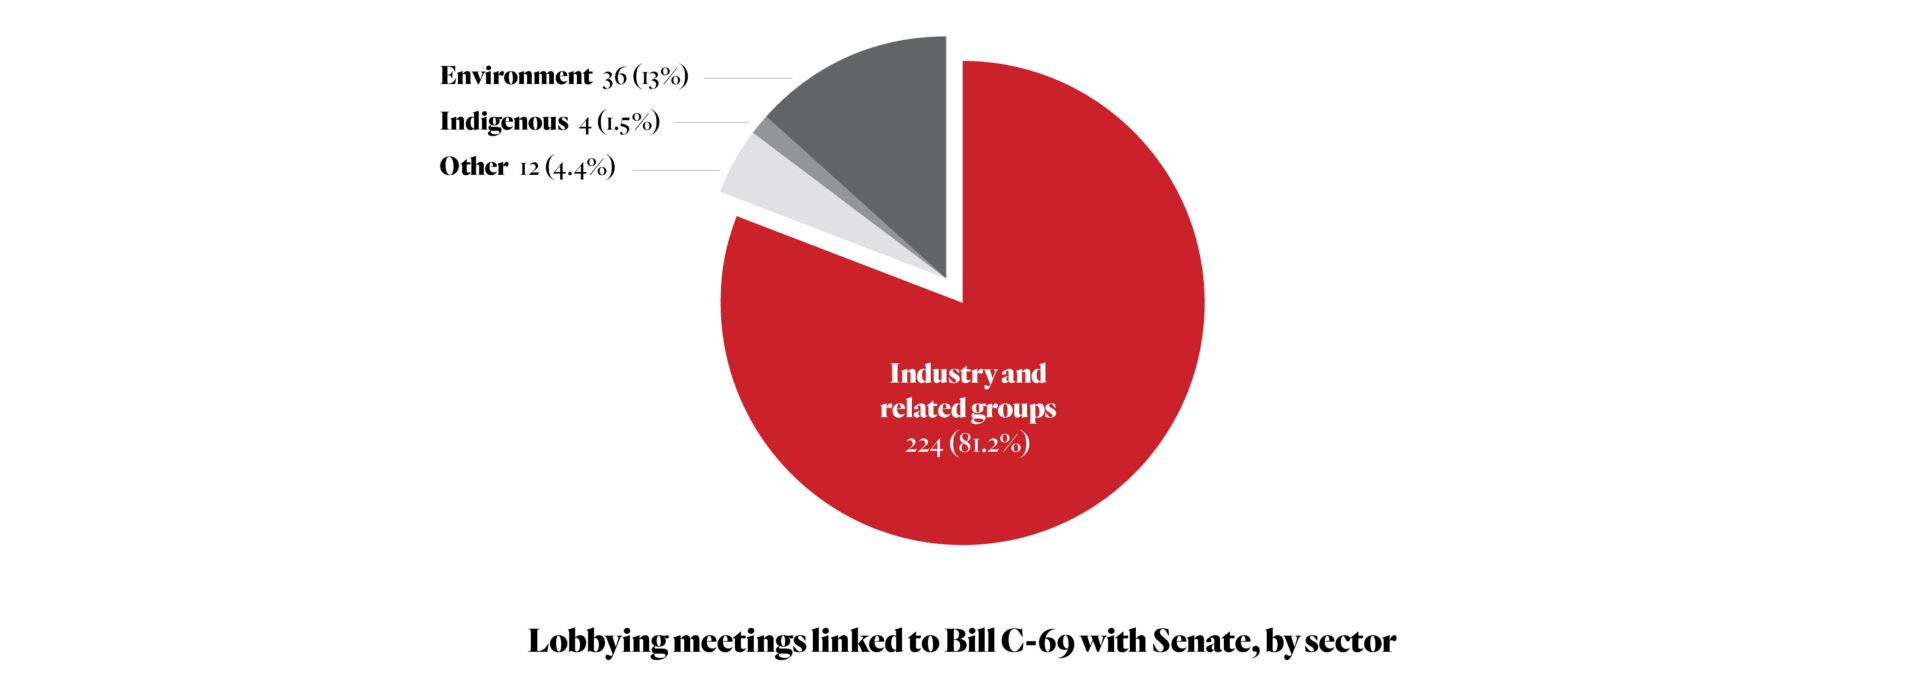 Lobbying meetings linked to Bill C-69 with Senate, by sector